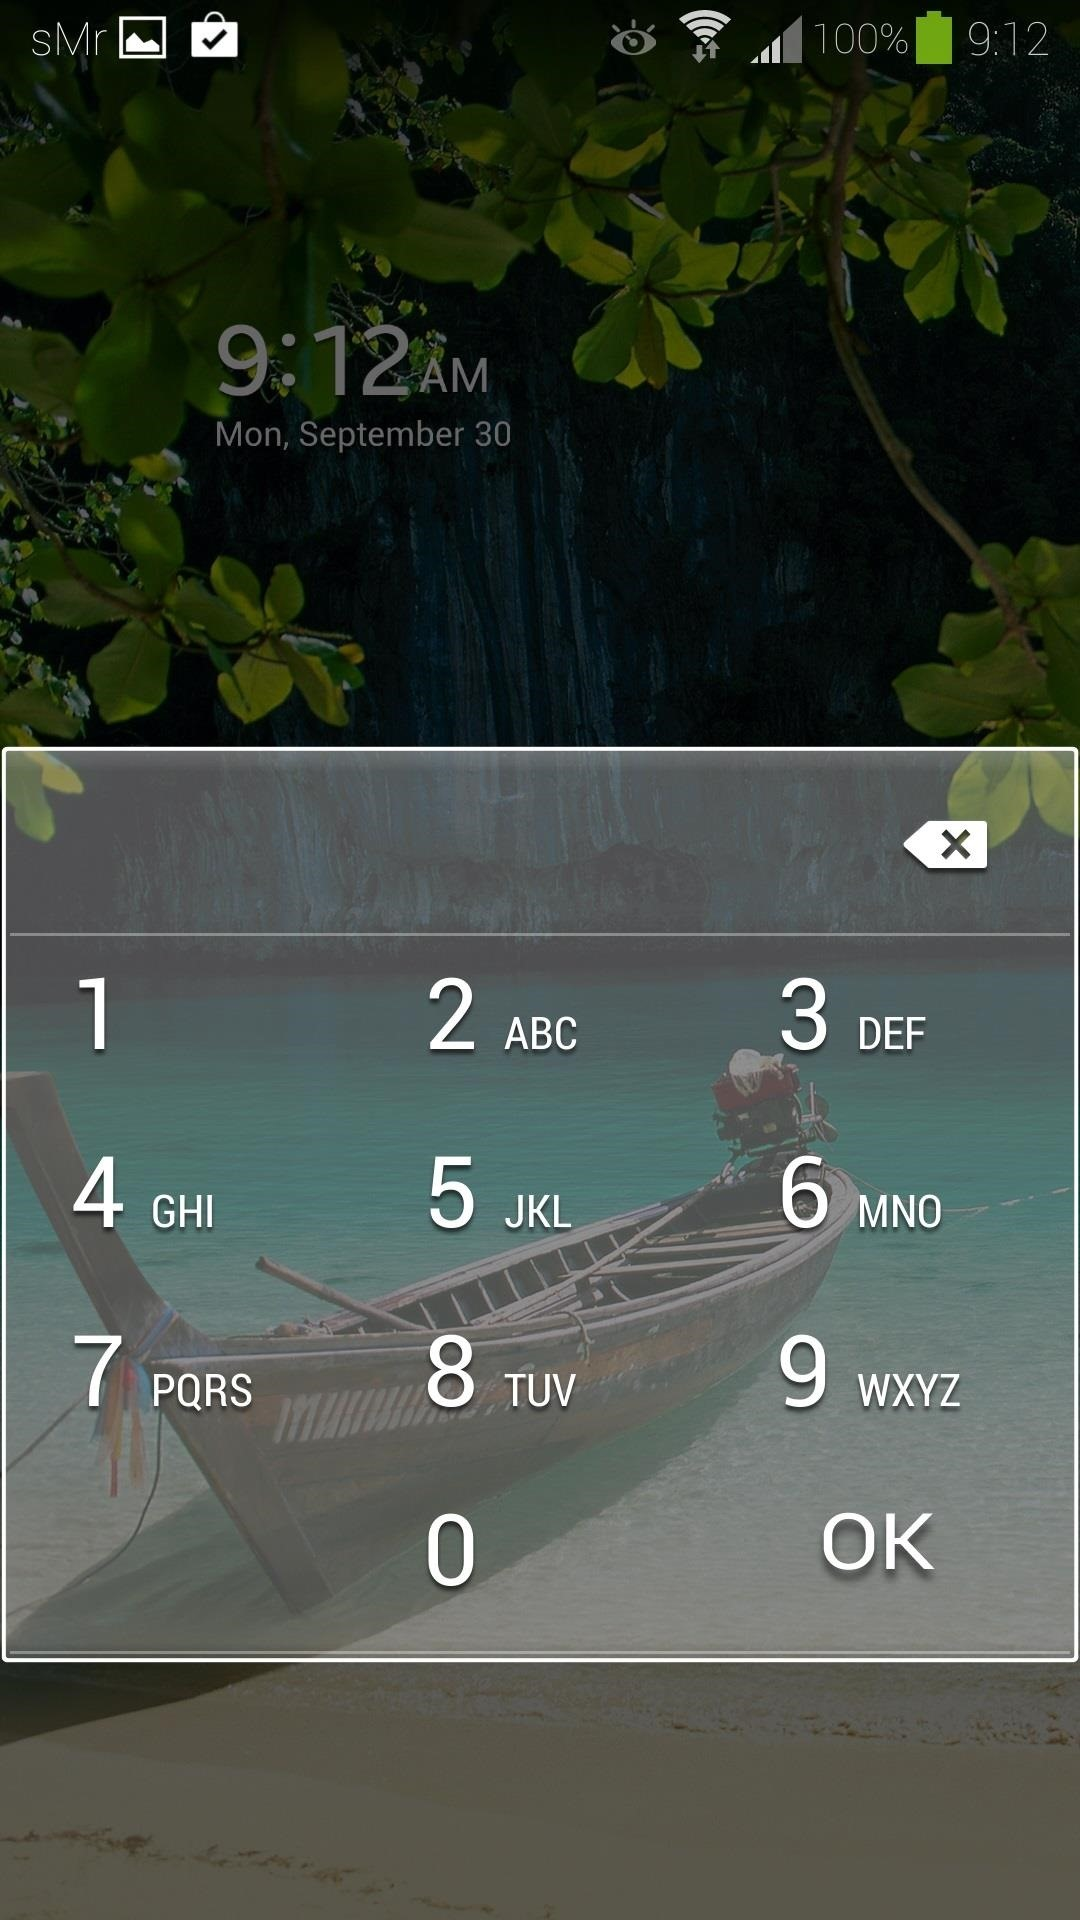 How to Retain Swipe to Unlock Effects with Lock Screen Security on a Samsung Galaxy S4